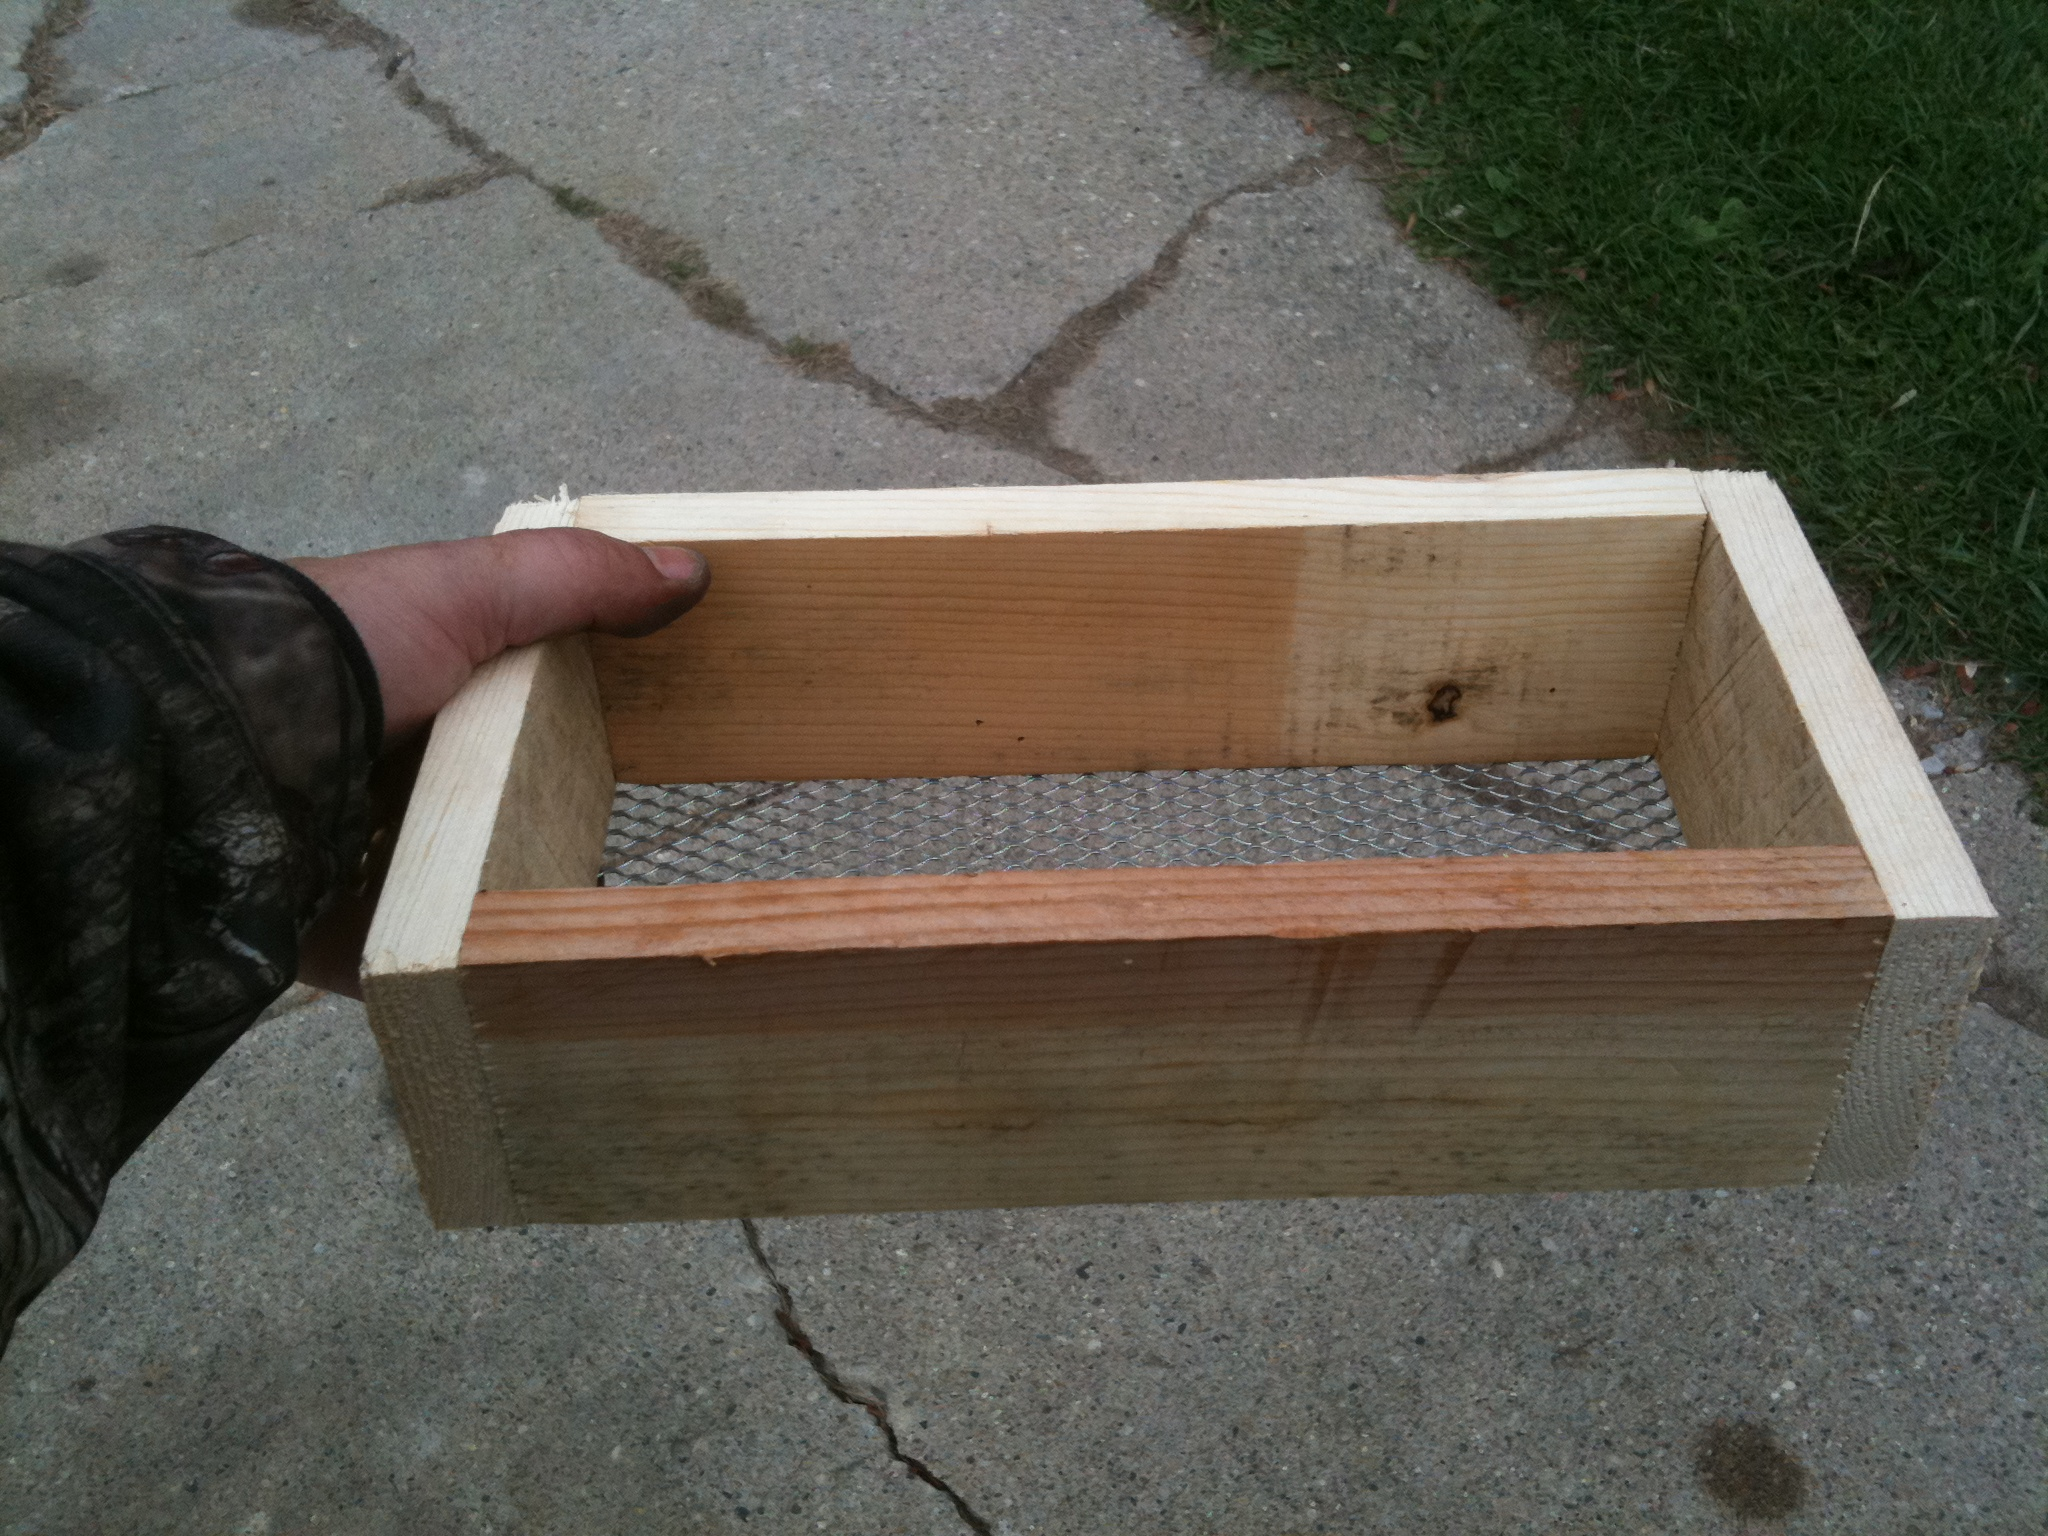 How To Build a Trapping Dirt Sifter